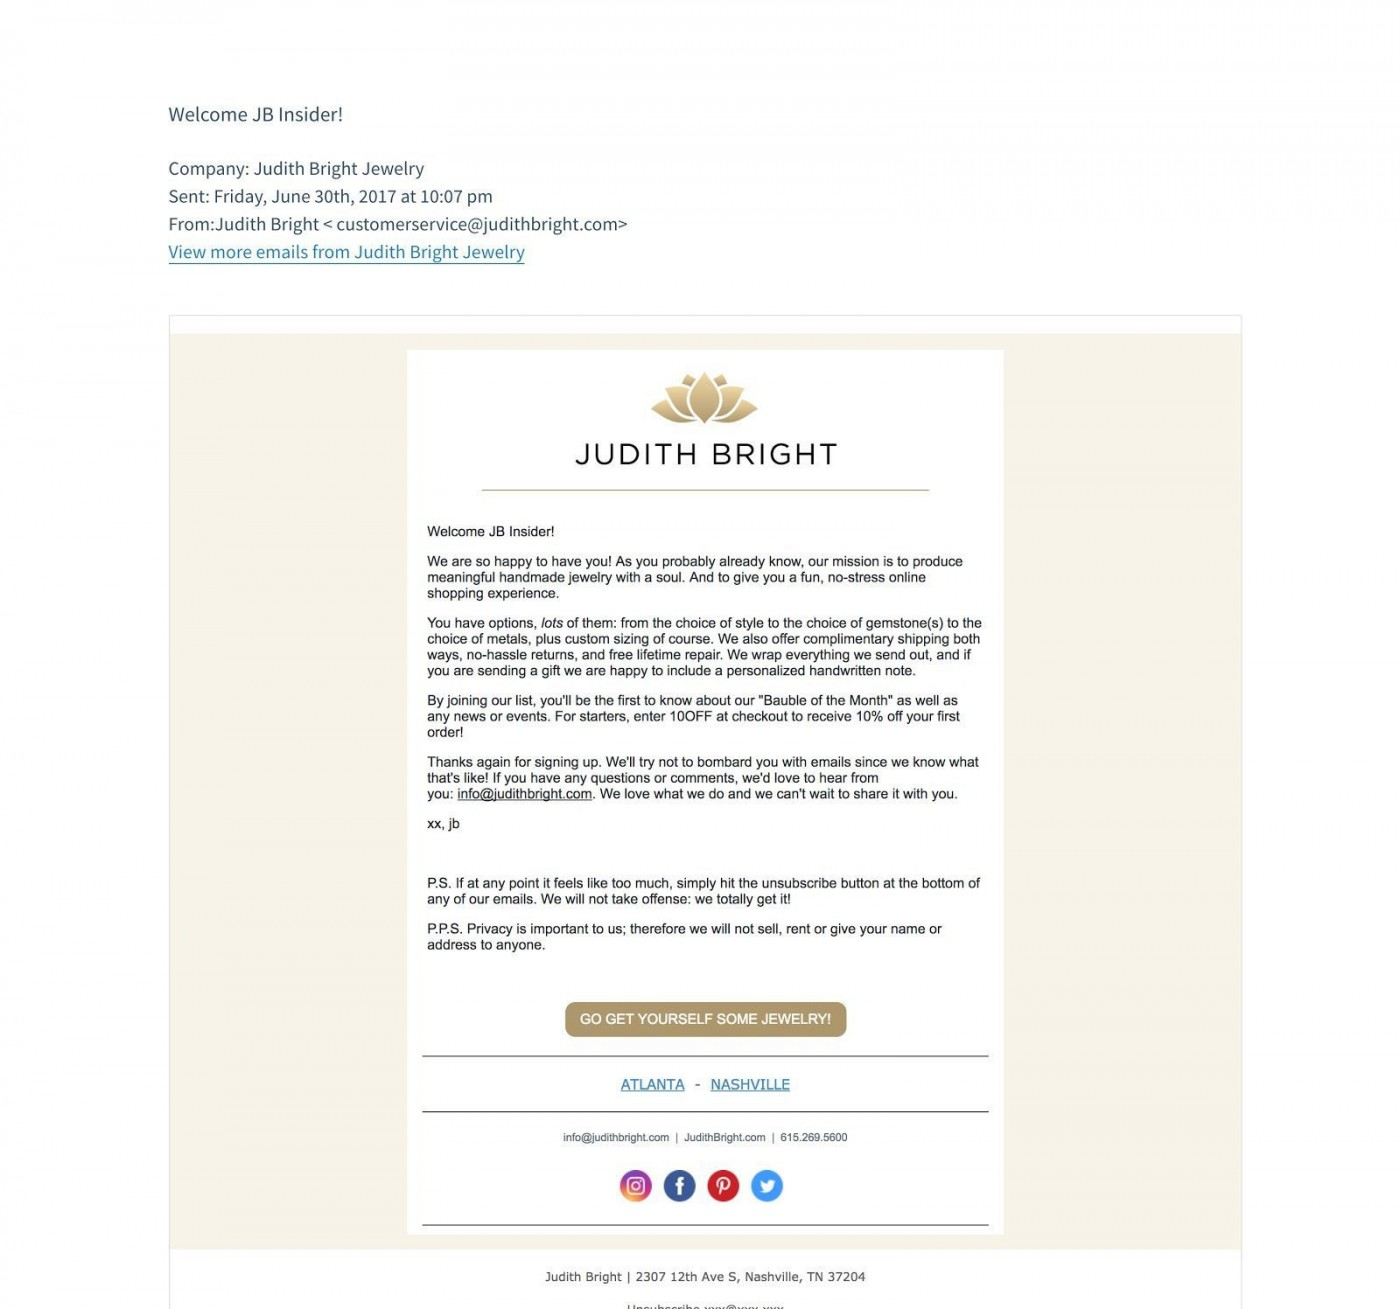 010 Marvelou Join Our Mailing List Template High Definition  Email1400